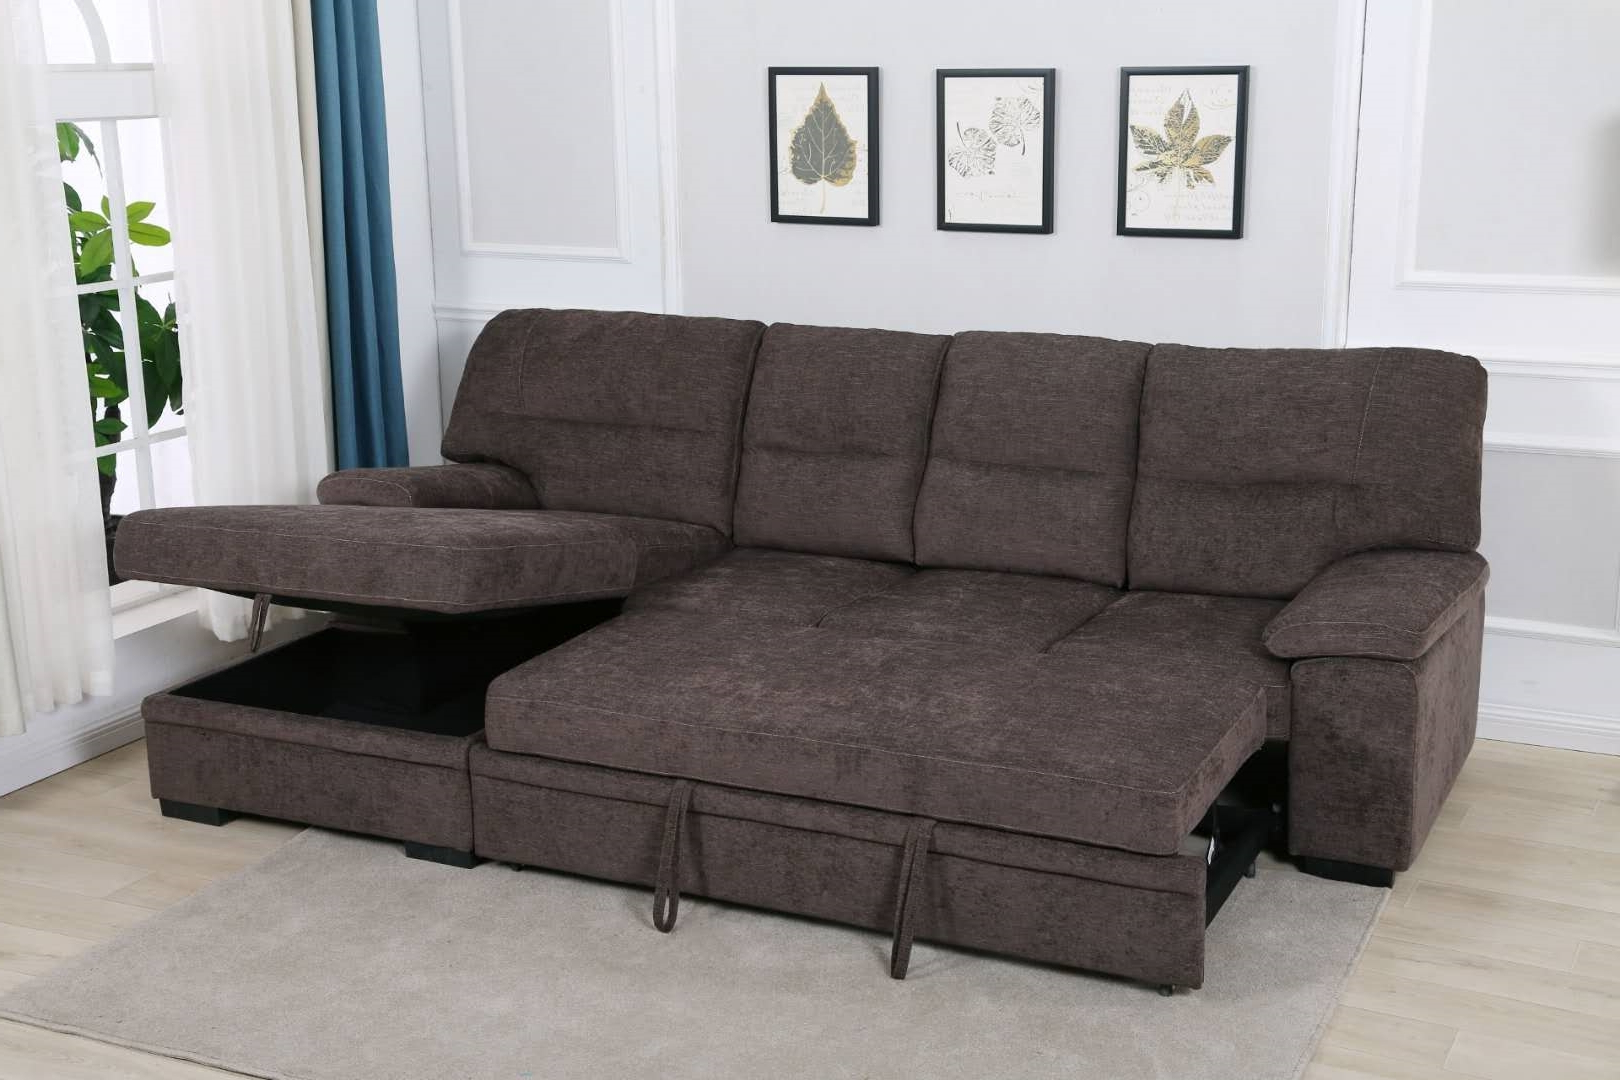 Silvio Sectional Sofa/ Sofa Bed With Storage Ifurniture For 2018 Live It Cozy Sectional Sofa Beds With Storage (View 5 of 25)